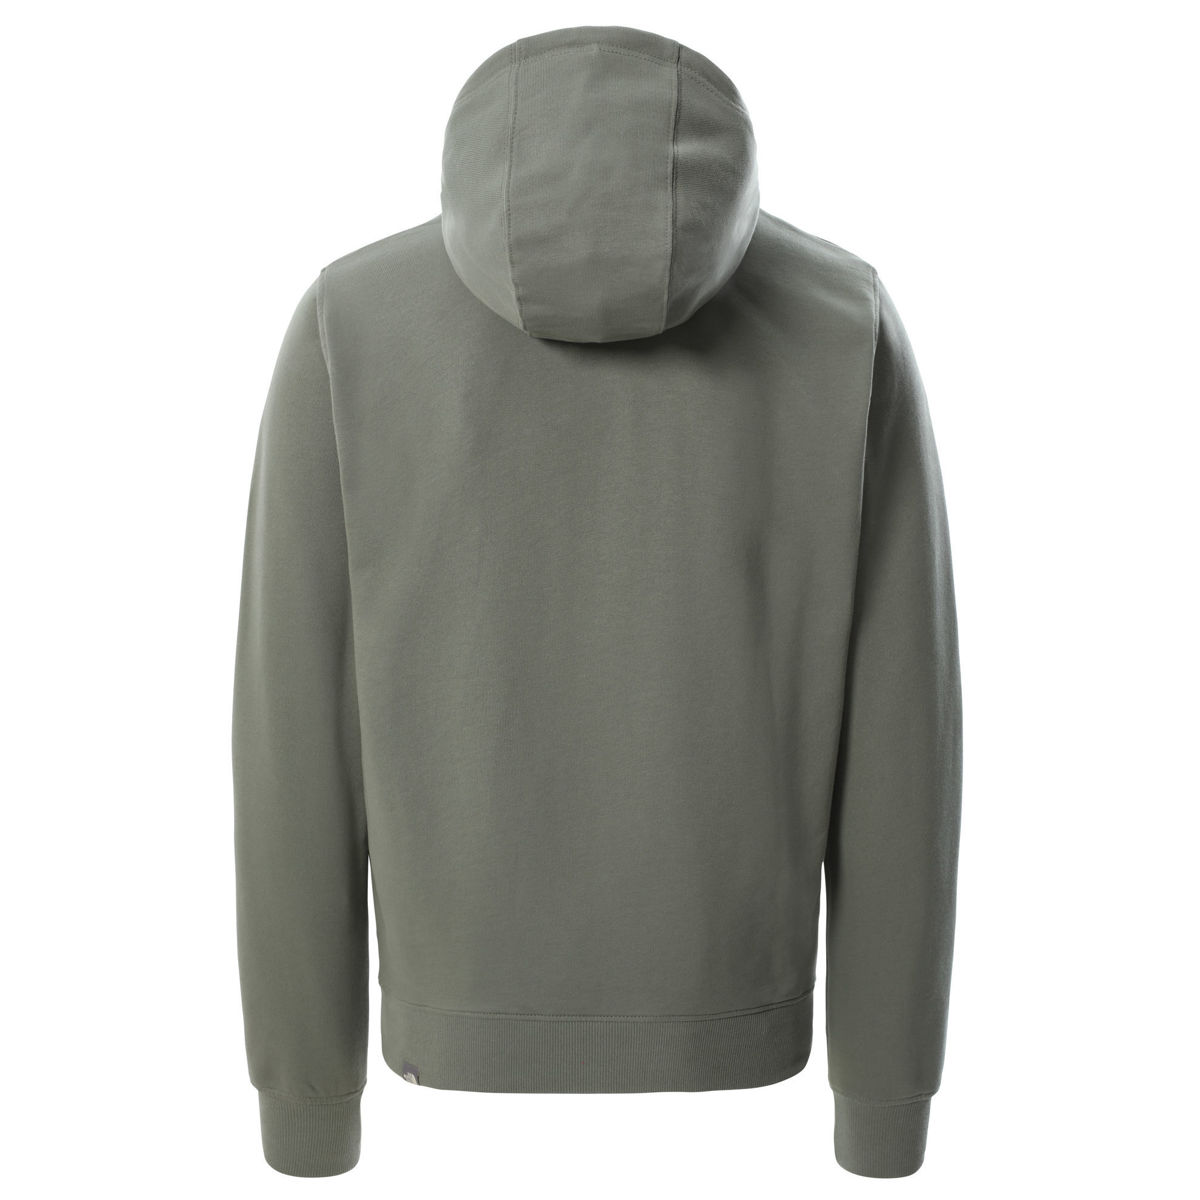 Bilde av The North Face M Light Drew Peak Pullover Hoodie, Agave Green